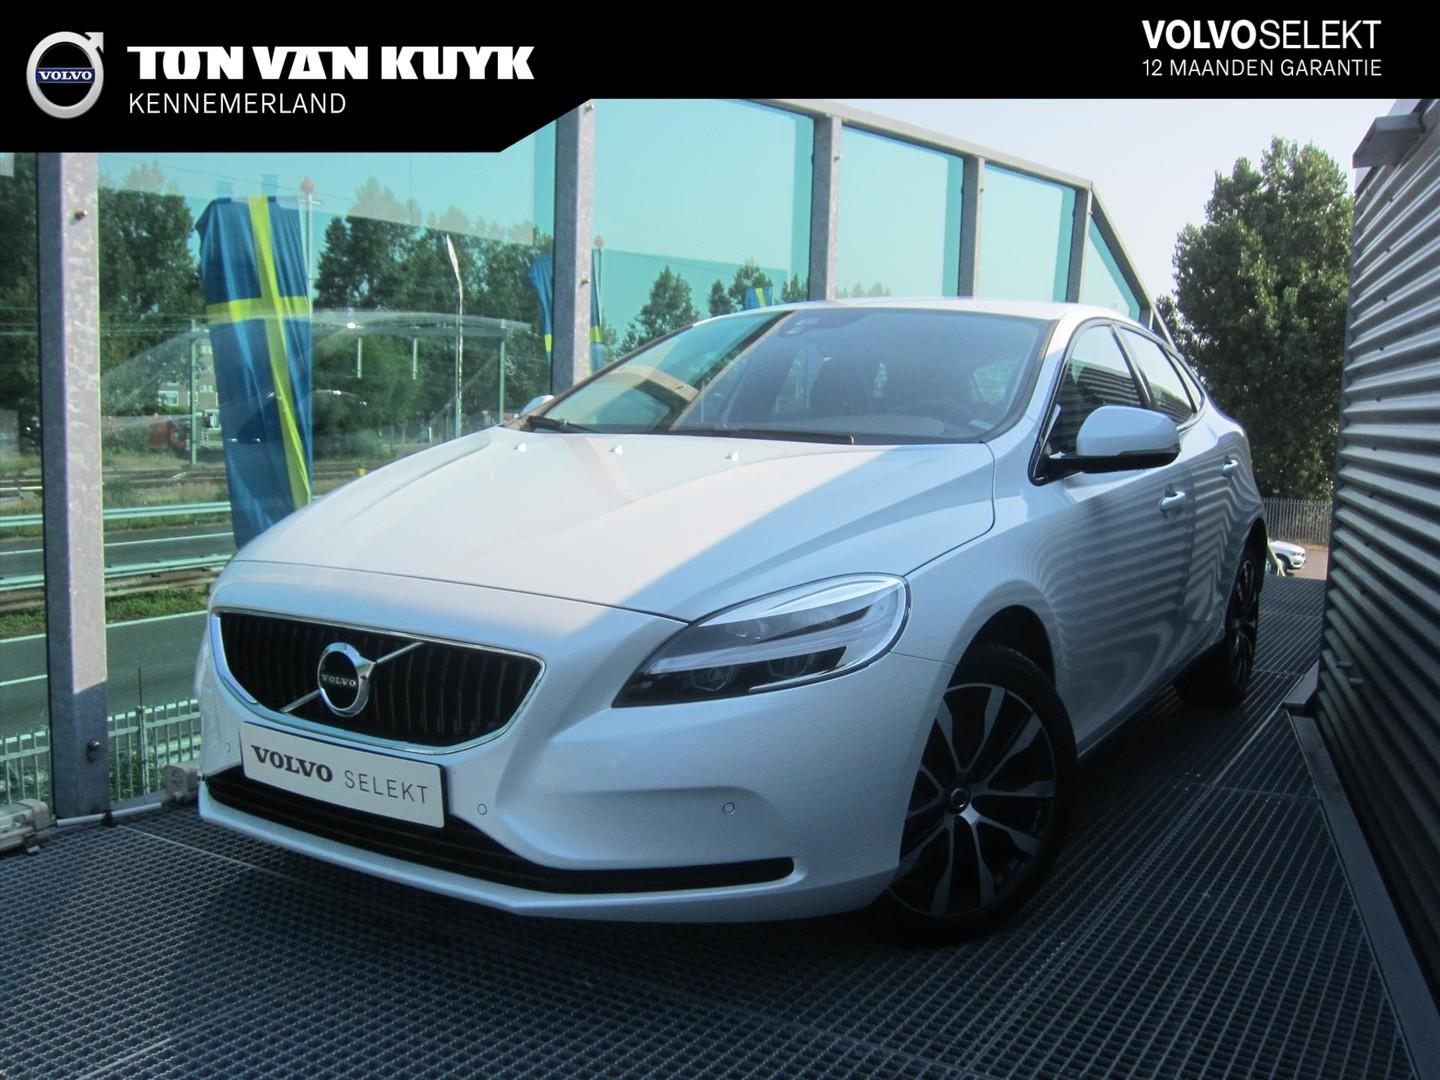 Volvo V40 1.5 t3 152pk geartronic dynamic edition / dab+ / park assist v+a